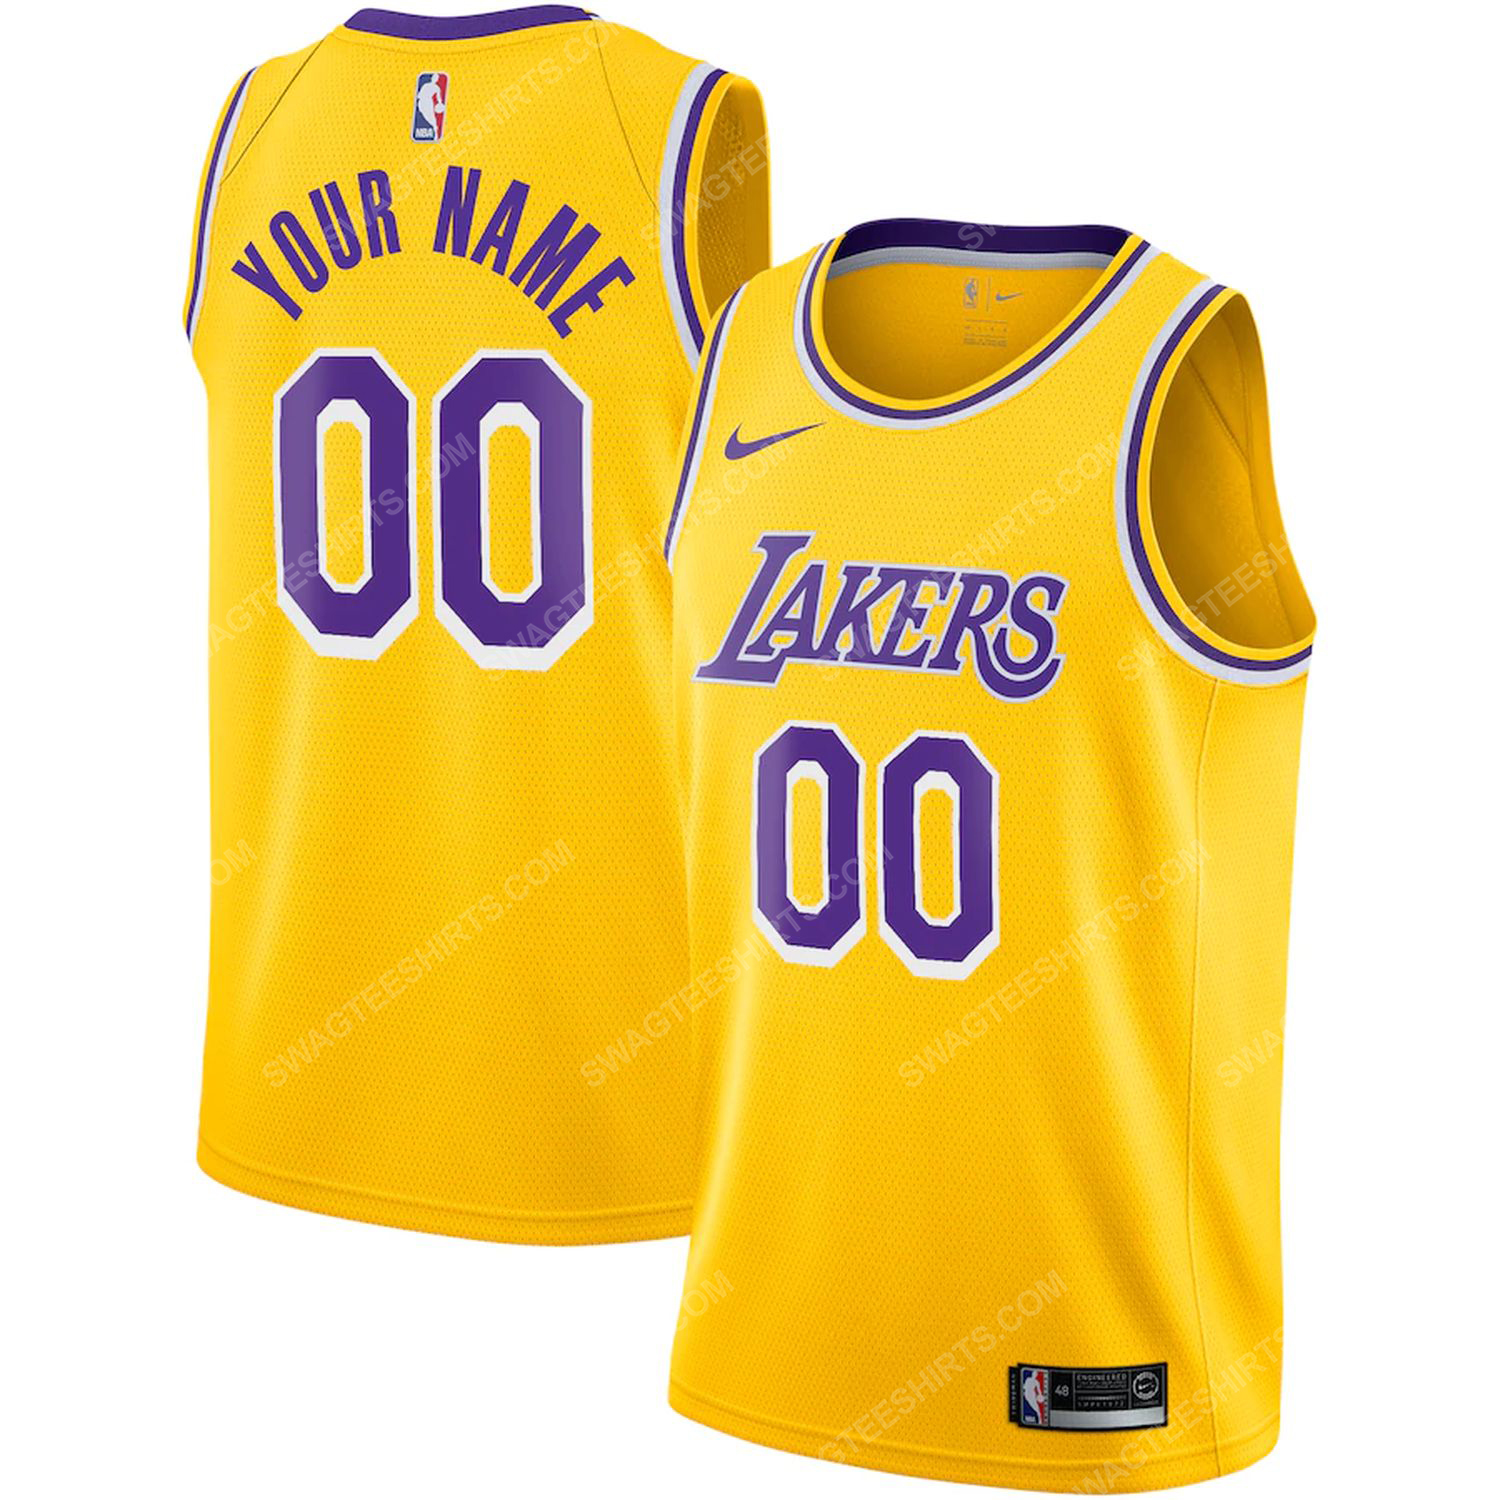 Custom nba los angeles lakers basketball jersey-icon edition- gold